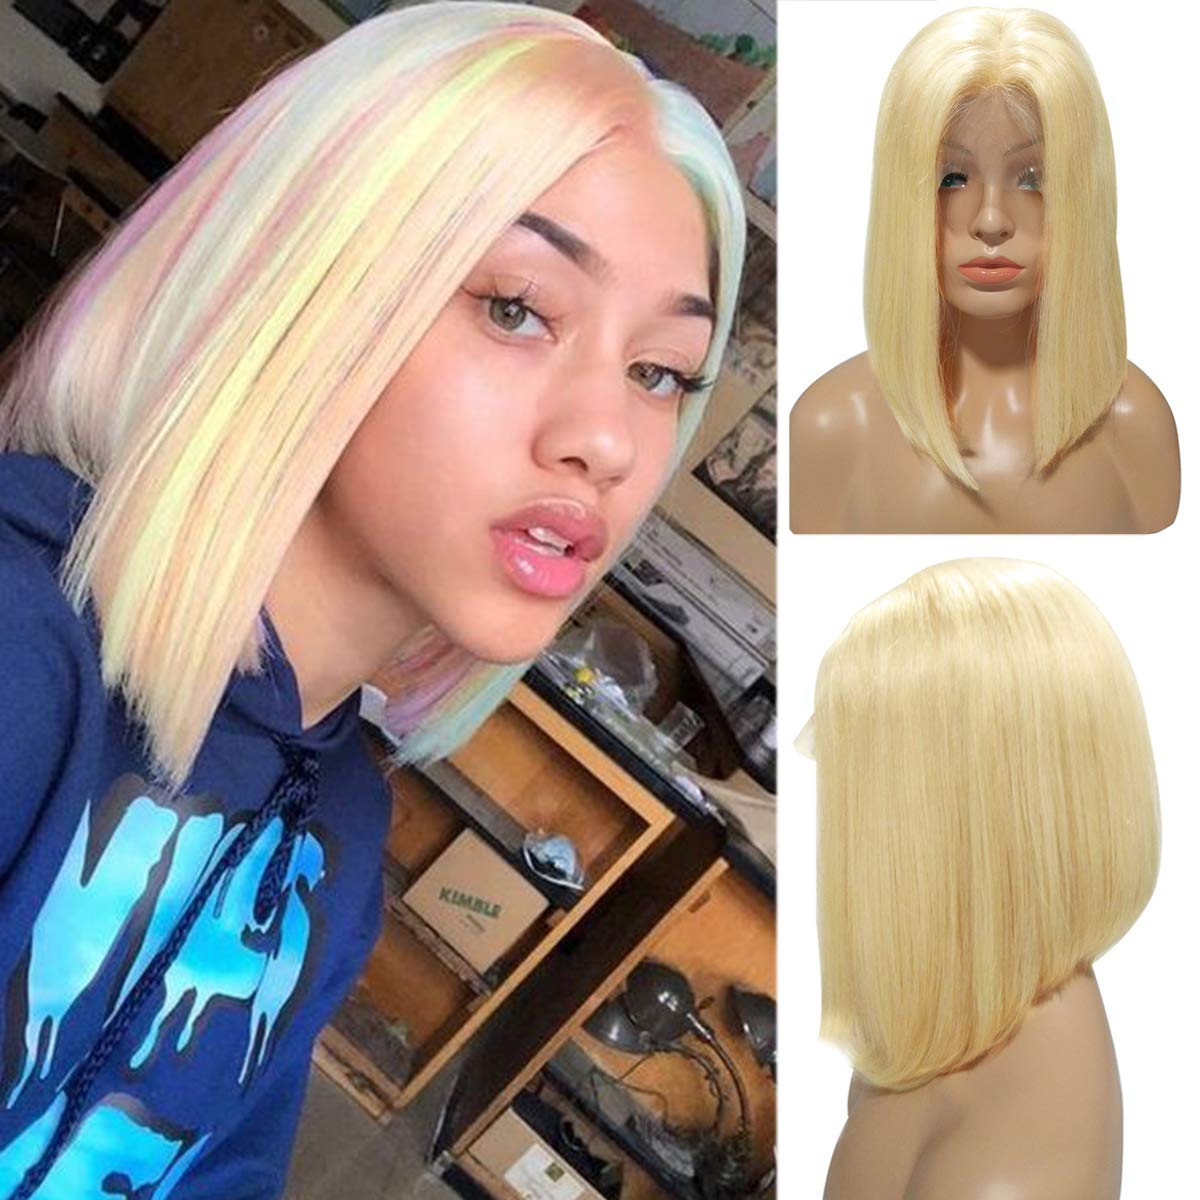 Licoville 613 Blonde Bob Lace Front Human Hair Wigs Pre Plucked 12'' Middle Part Straight Sleek Blond Bob Lace Wig 180% Density 13×4 Frontal Wig for Women(Can be Styled)